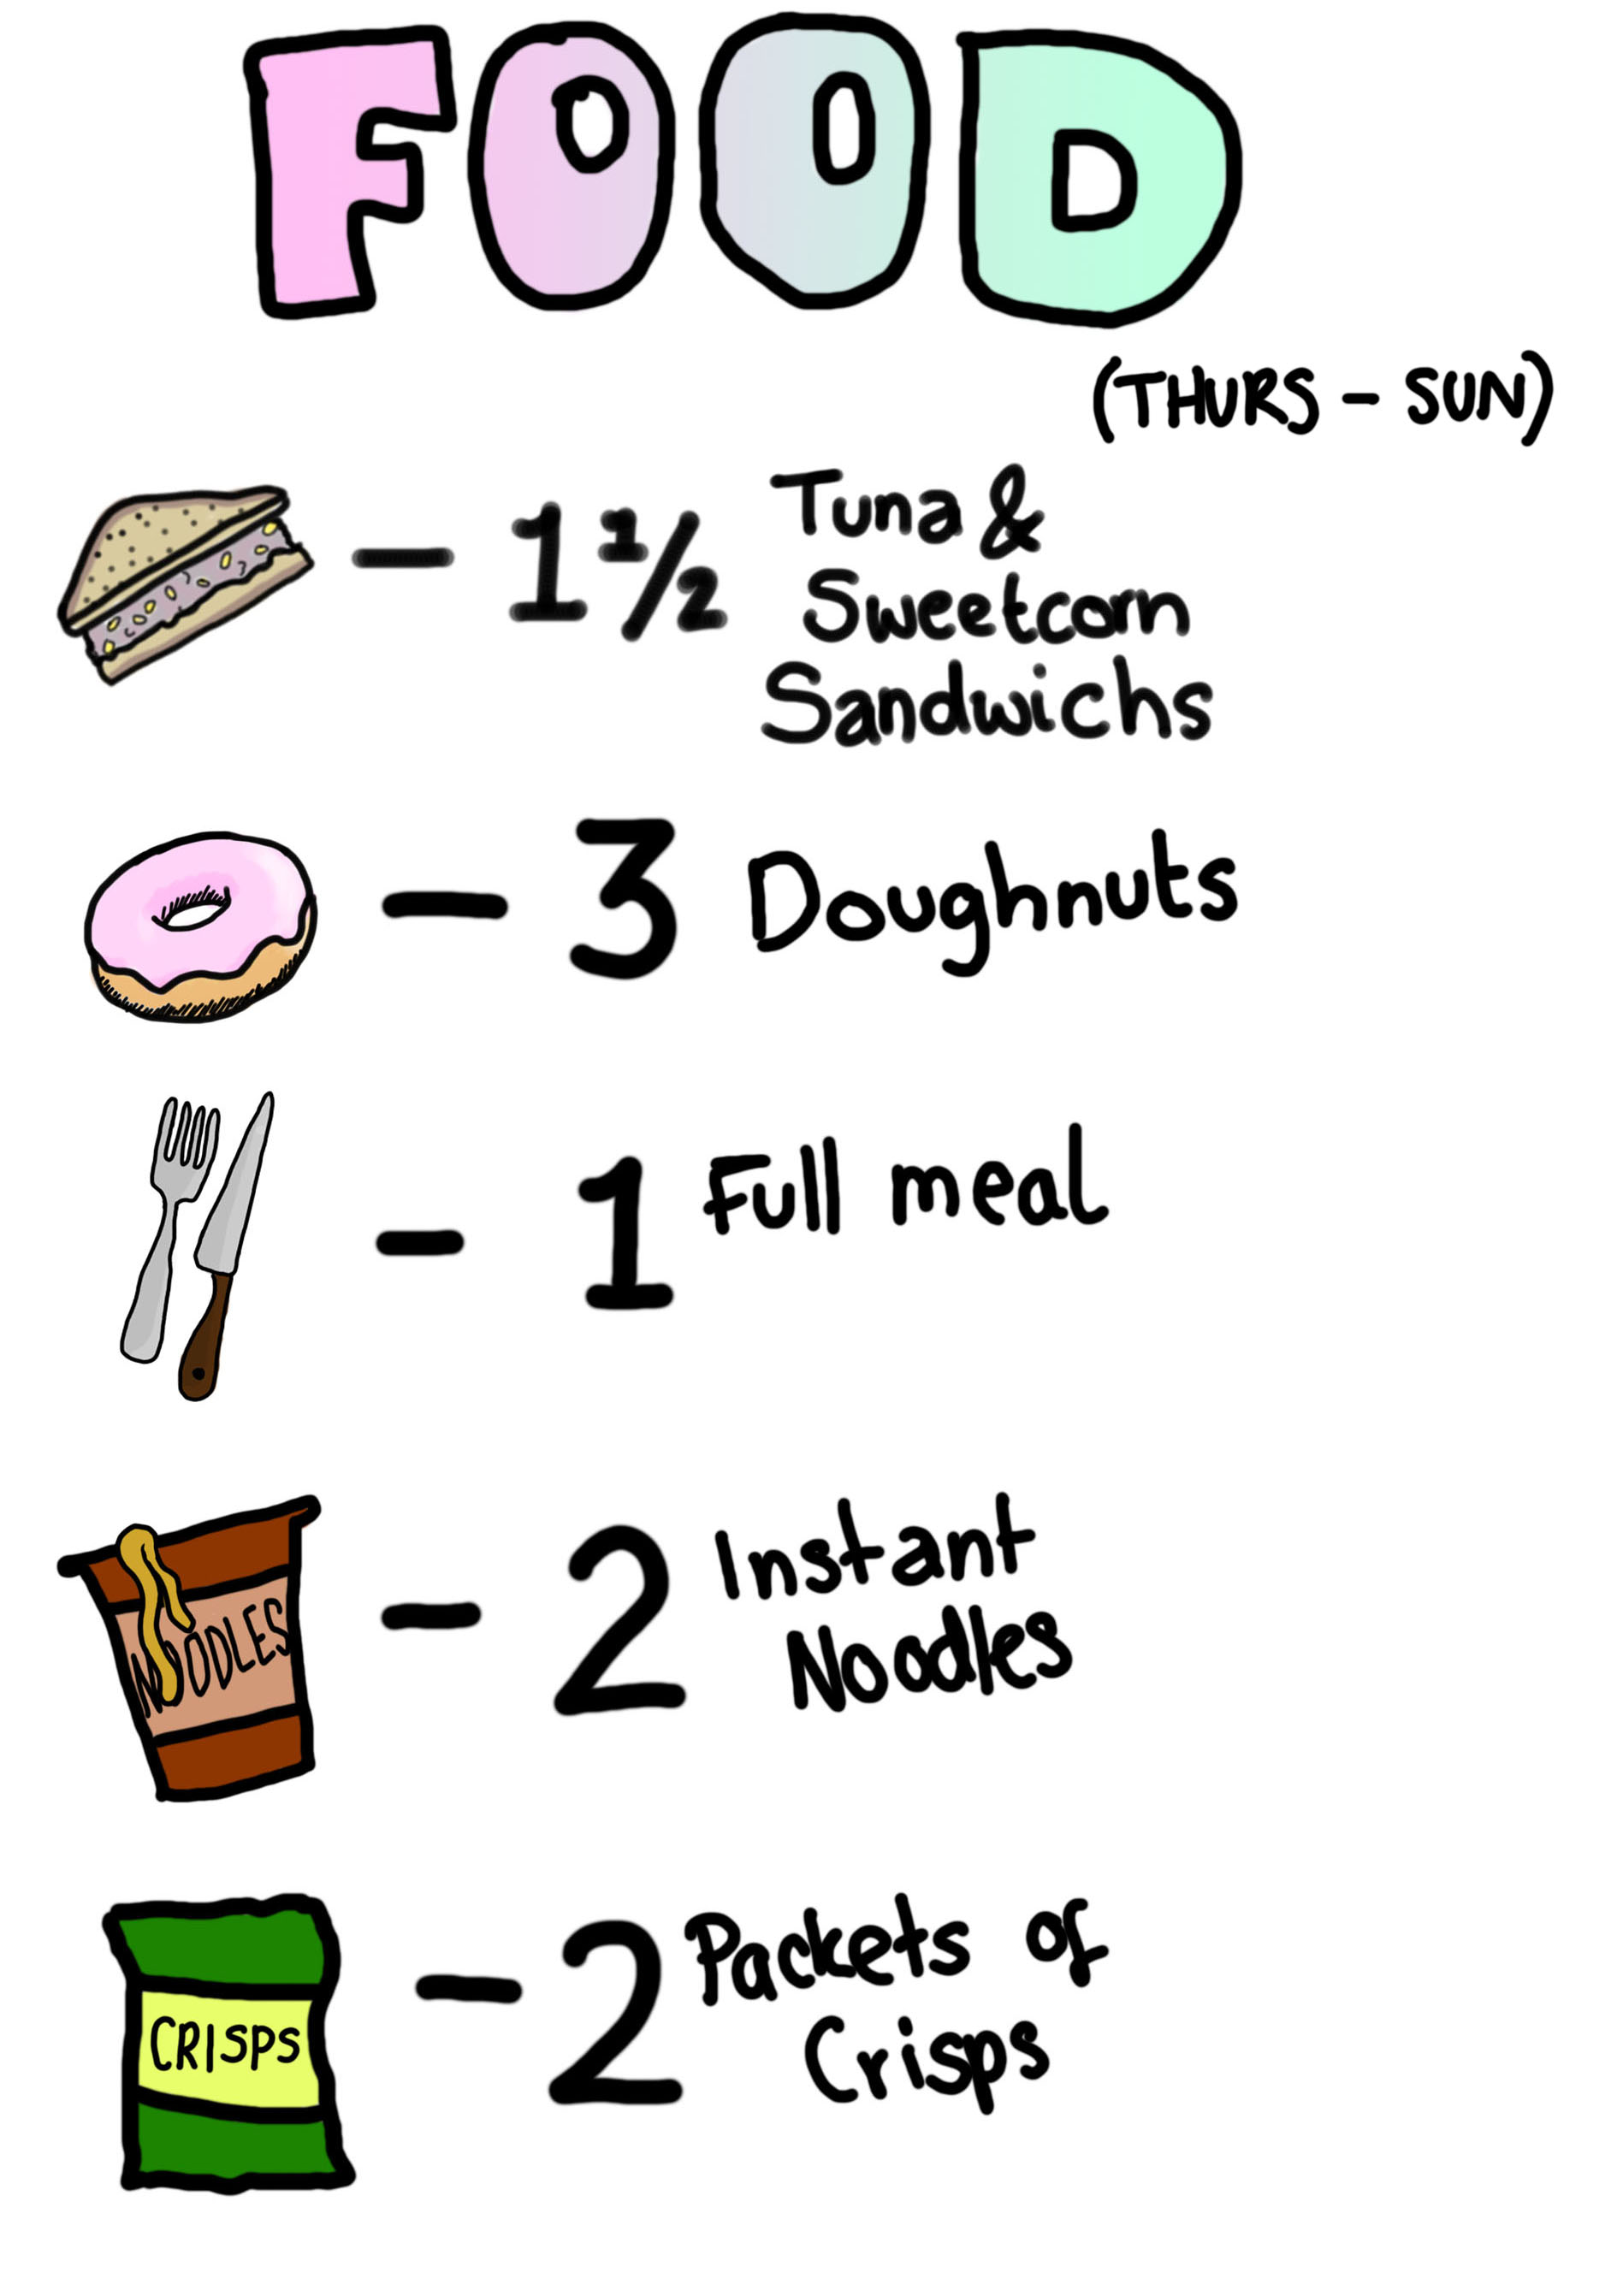 NB: The doughnuts were by chance from the @toneagraphy team or this list would be even shorter!